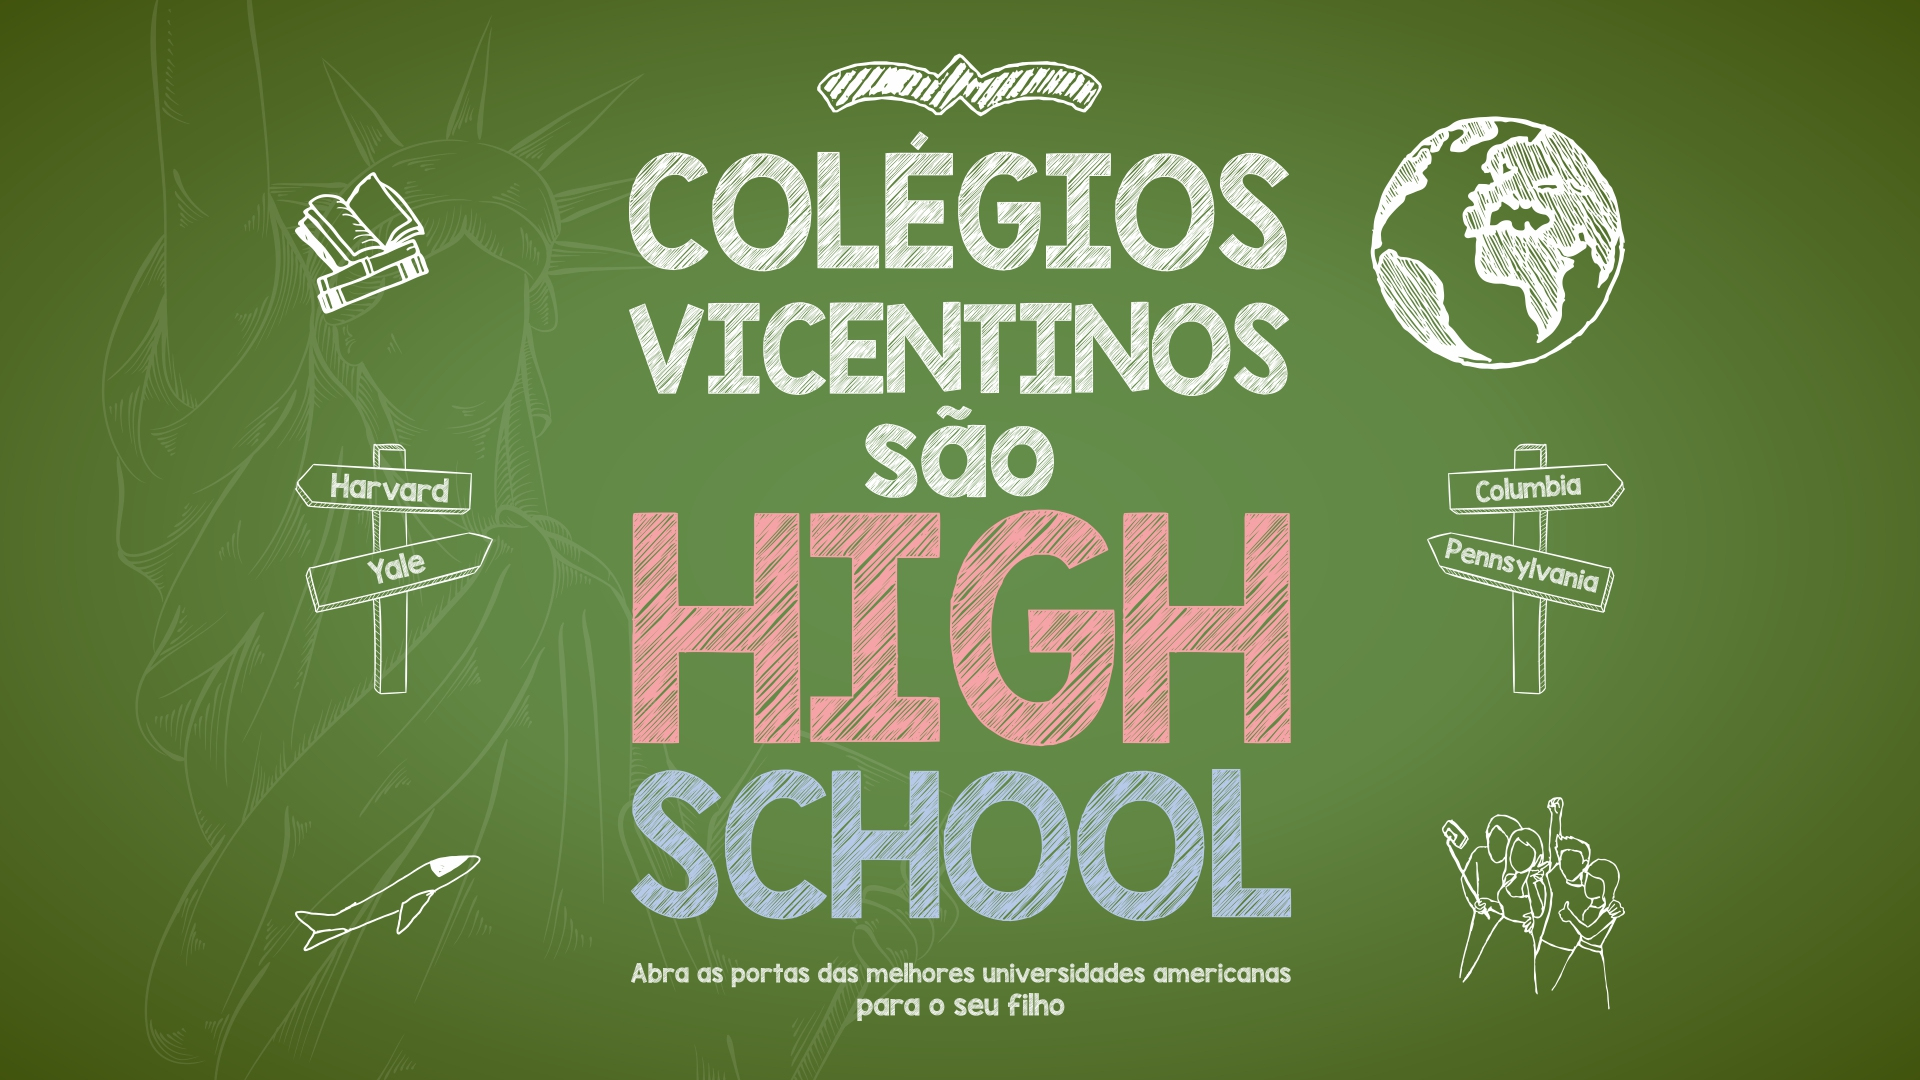 [High School - Colégios Vicentinos]